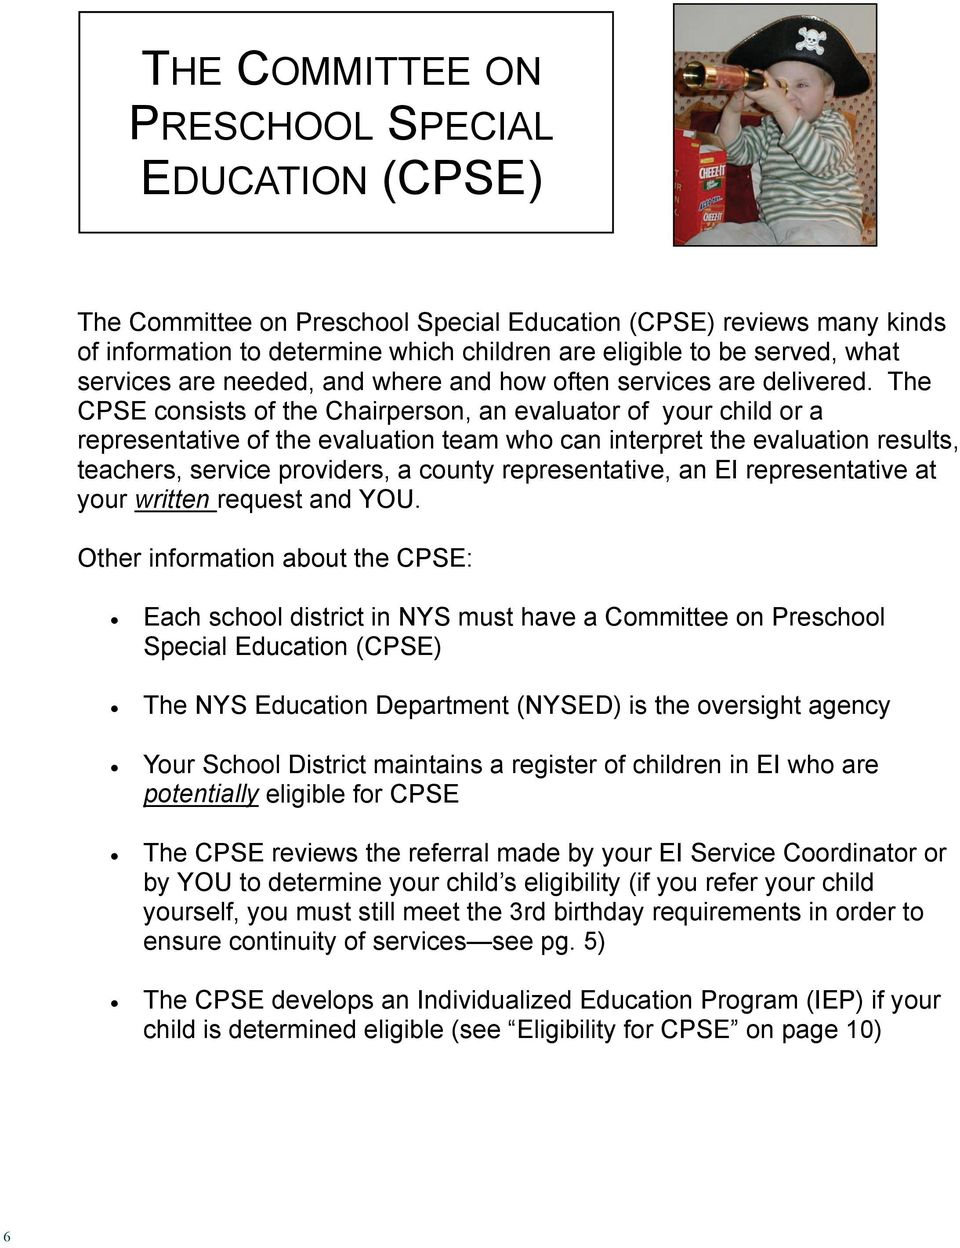 The CPSE consists of the Chairperson, an evaluator of your child or a representative of the evaluation team who can interpret the evaluation results, teachers, service providers, a county